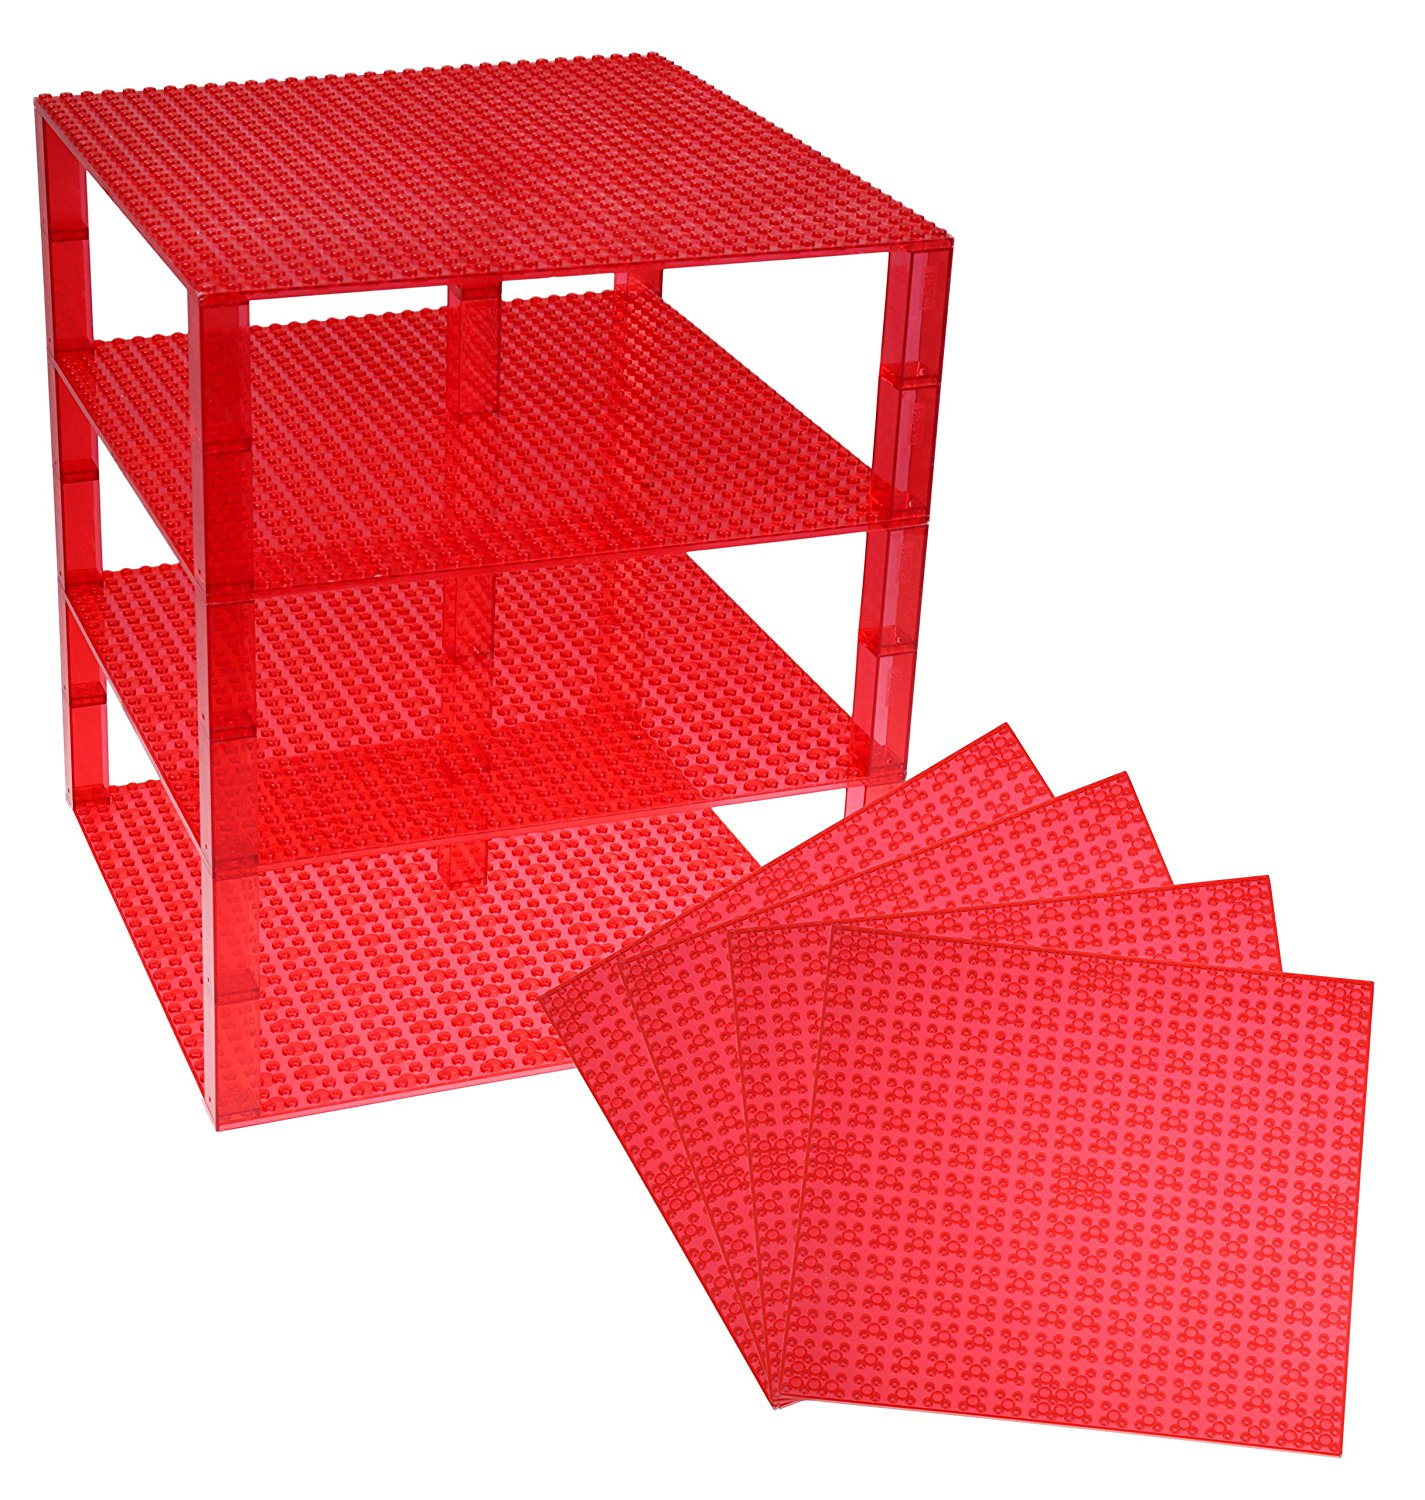 "Premium Clear Red Stackable Base Plates - 4 Pack 10"" x 10"" Baseplate Bundle with 30 New and Improved 2x2 Stackers - LEGO® Compatible - Tower Construction"